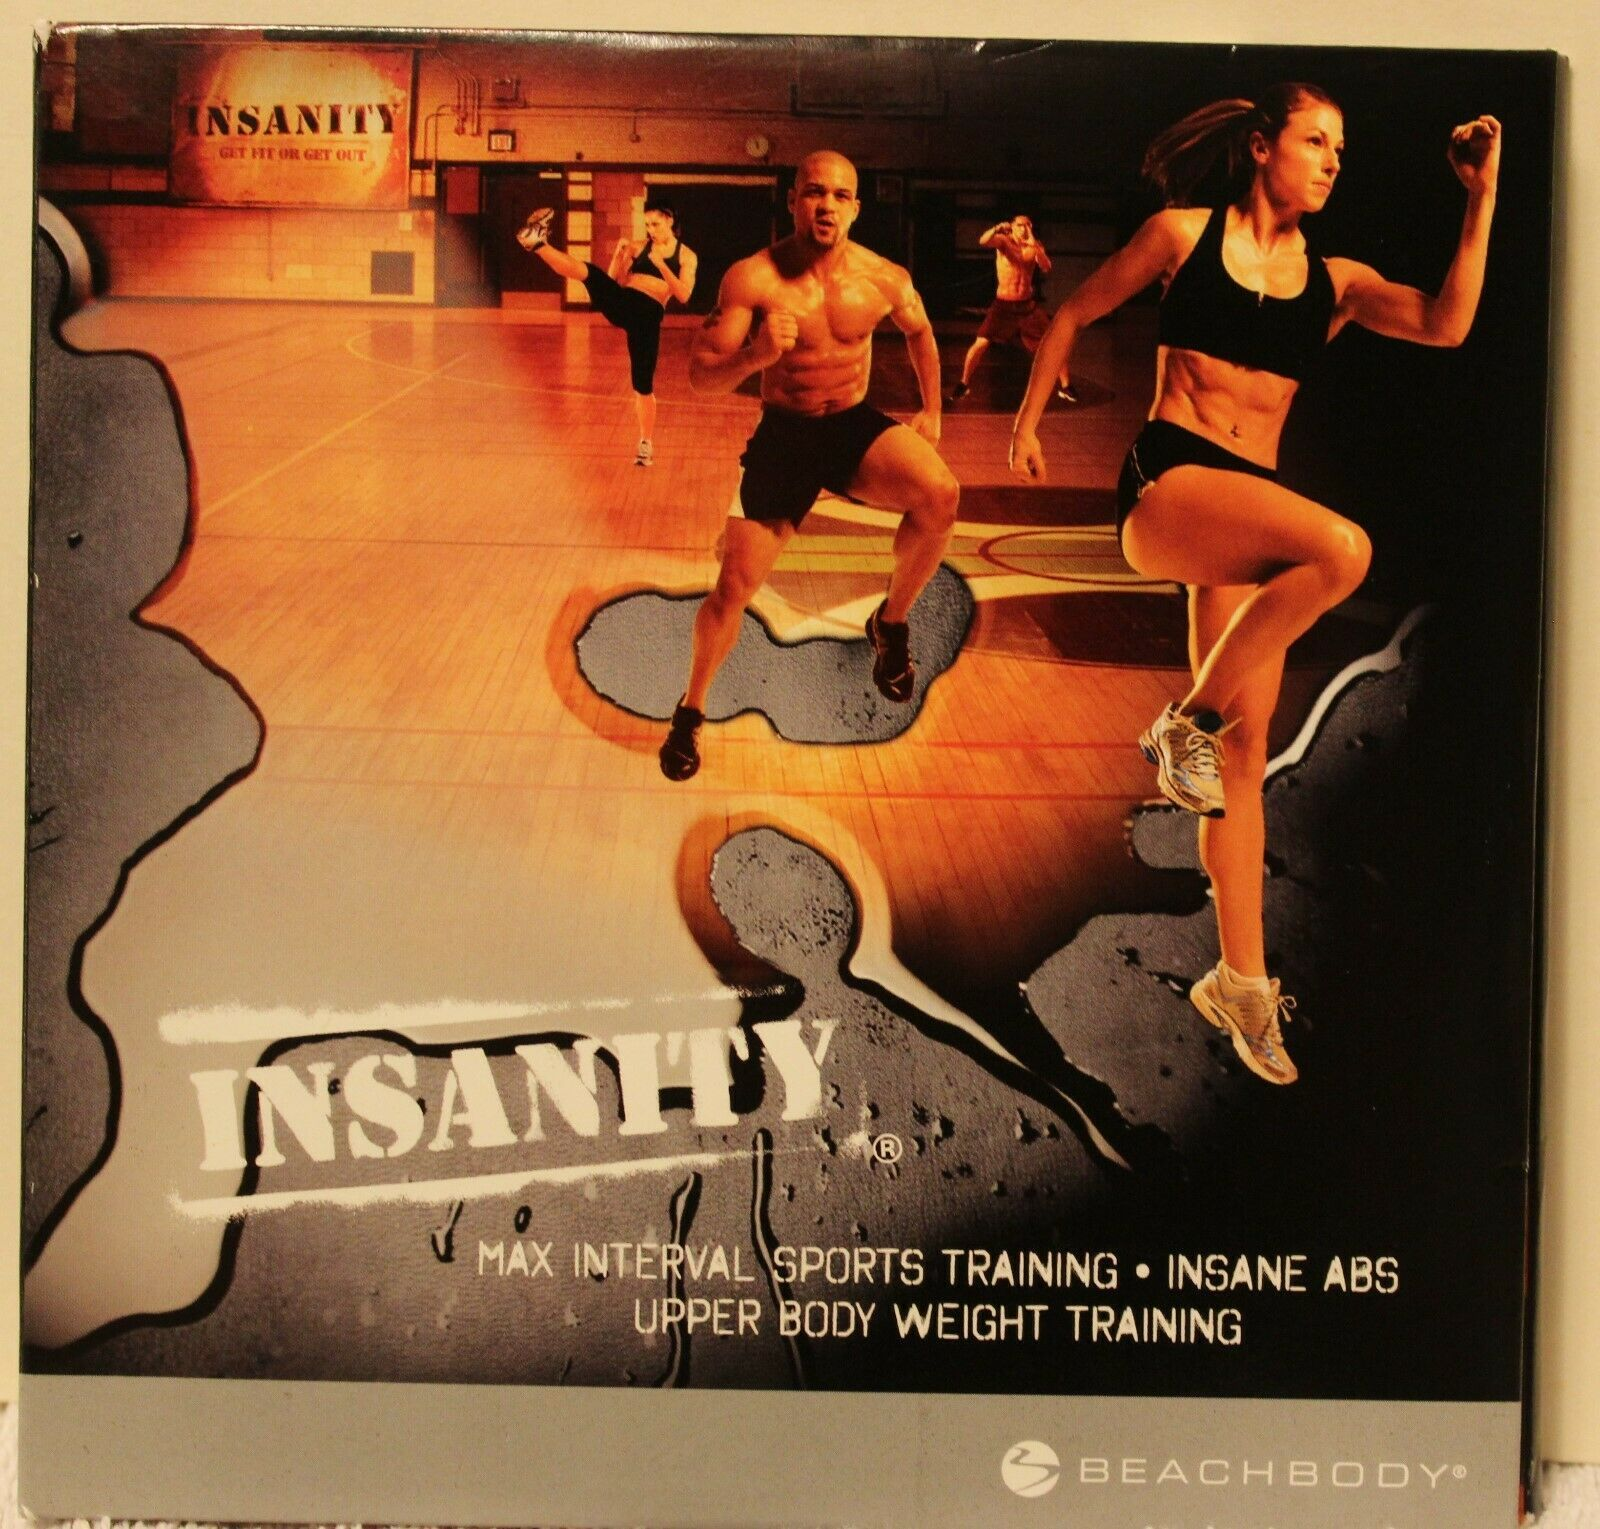 Insanity Max Interval Sports Training Insane Abs Upper Body weight train 3 DVDs image 2